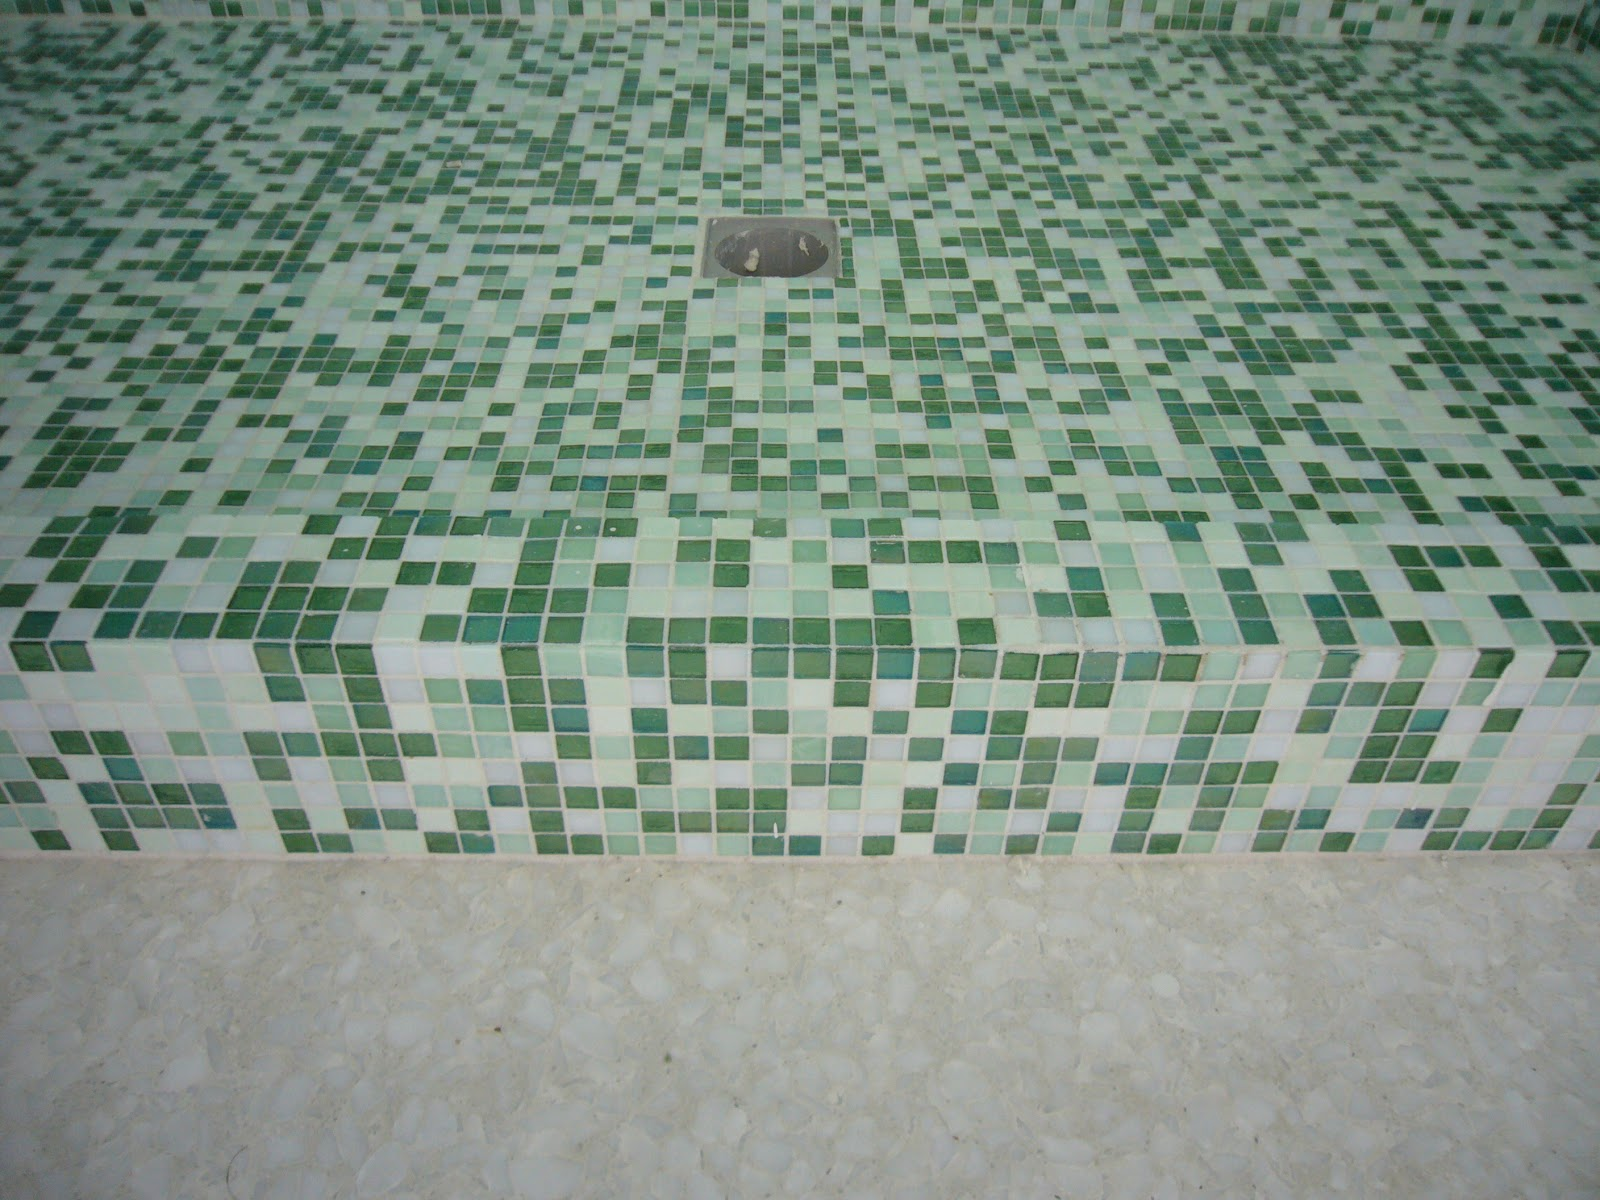 Bagno mosaico verde ~ fatua.net for .